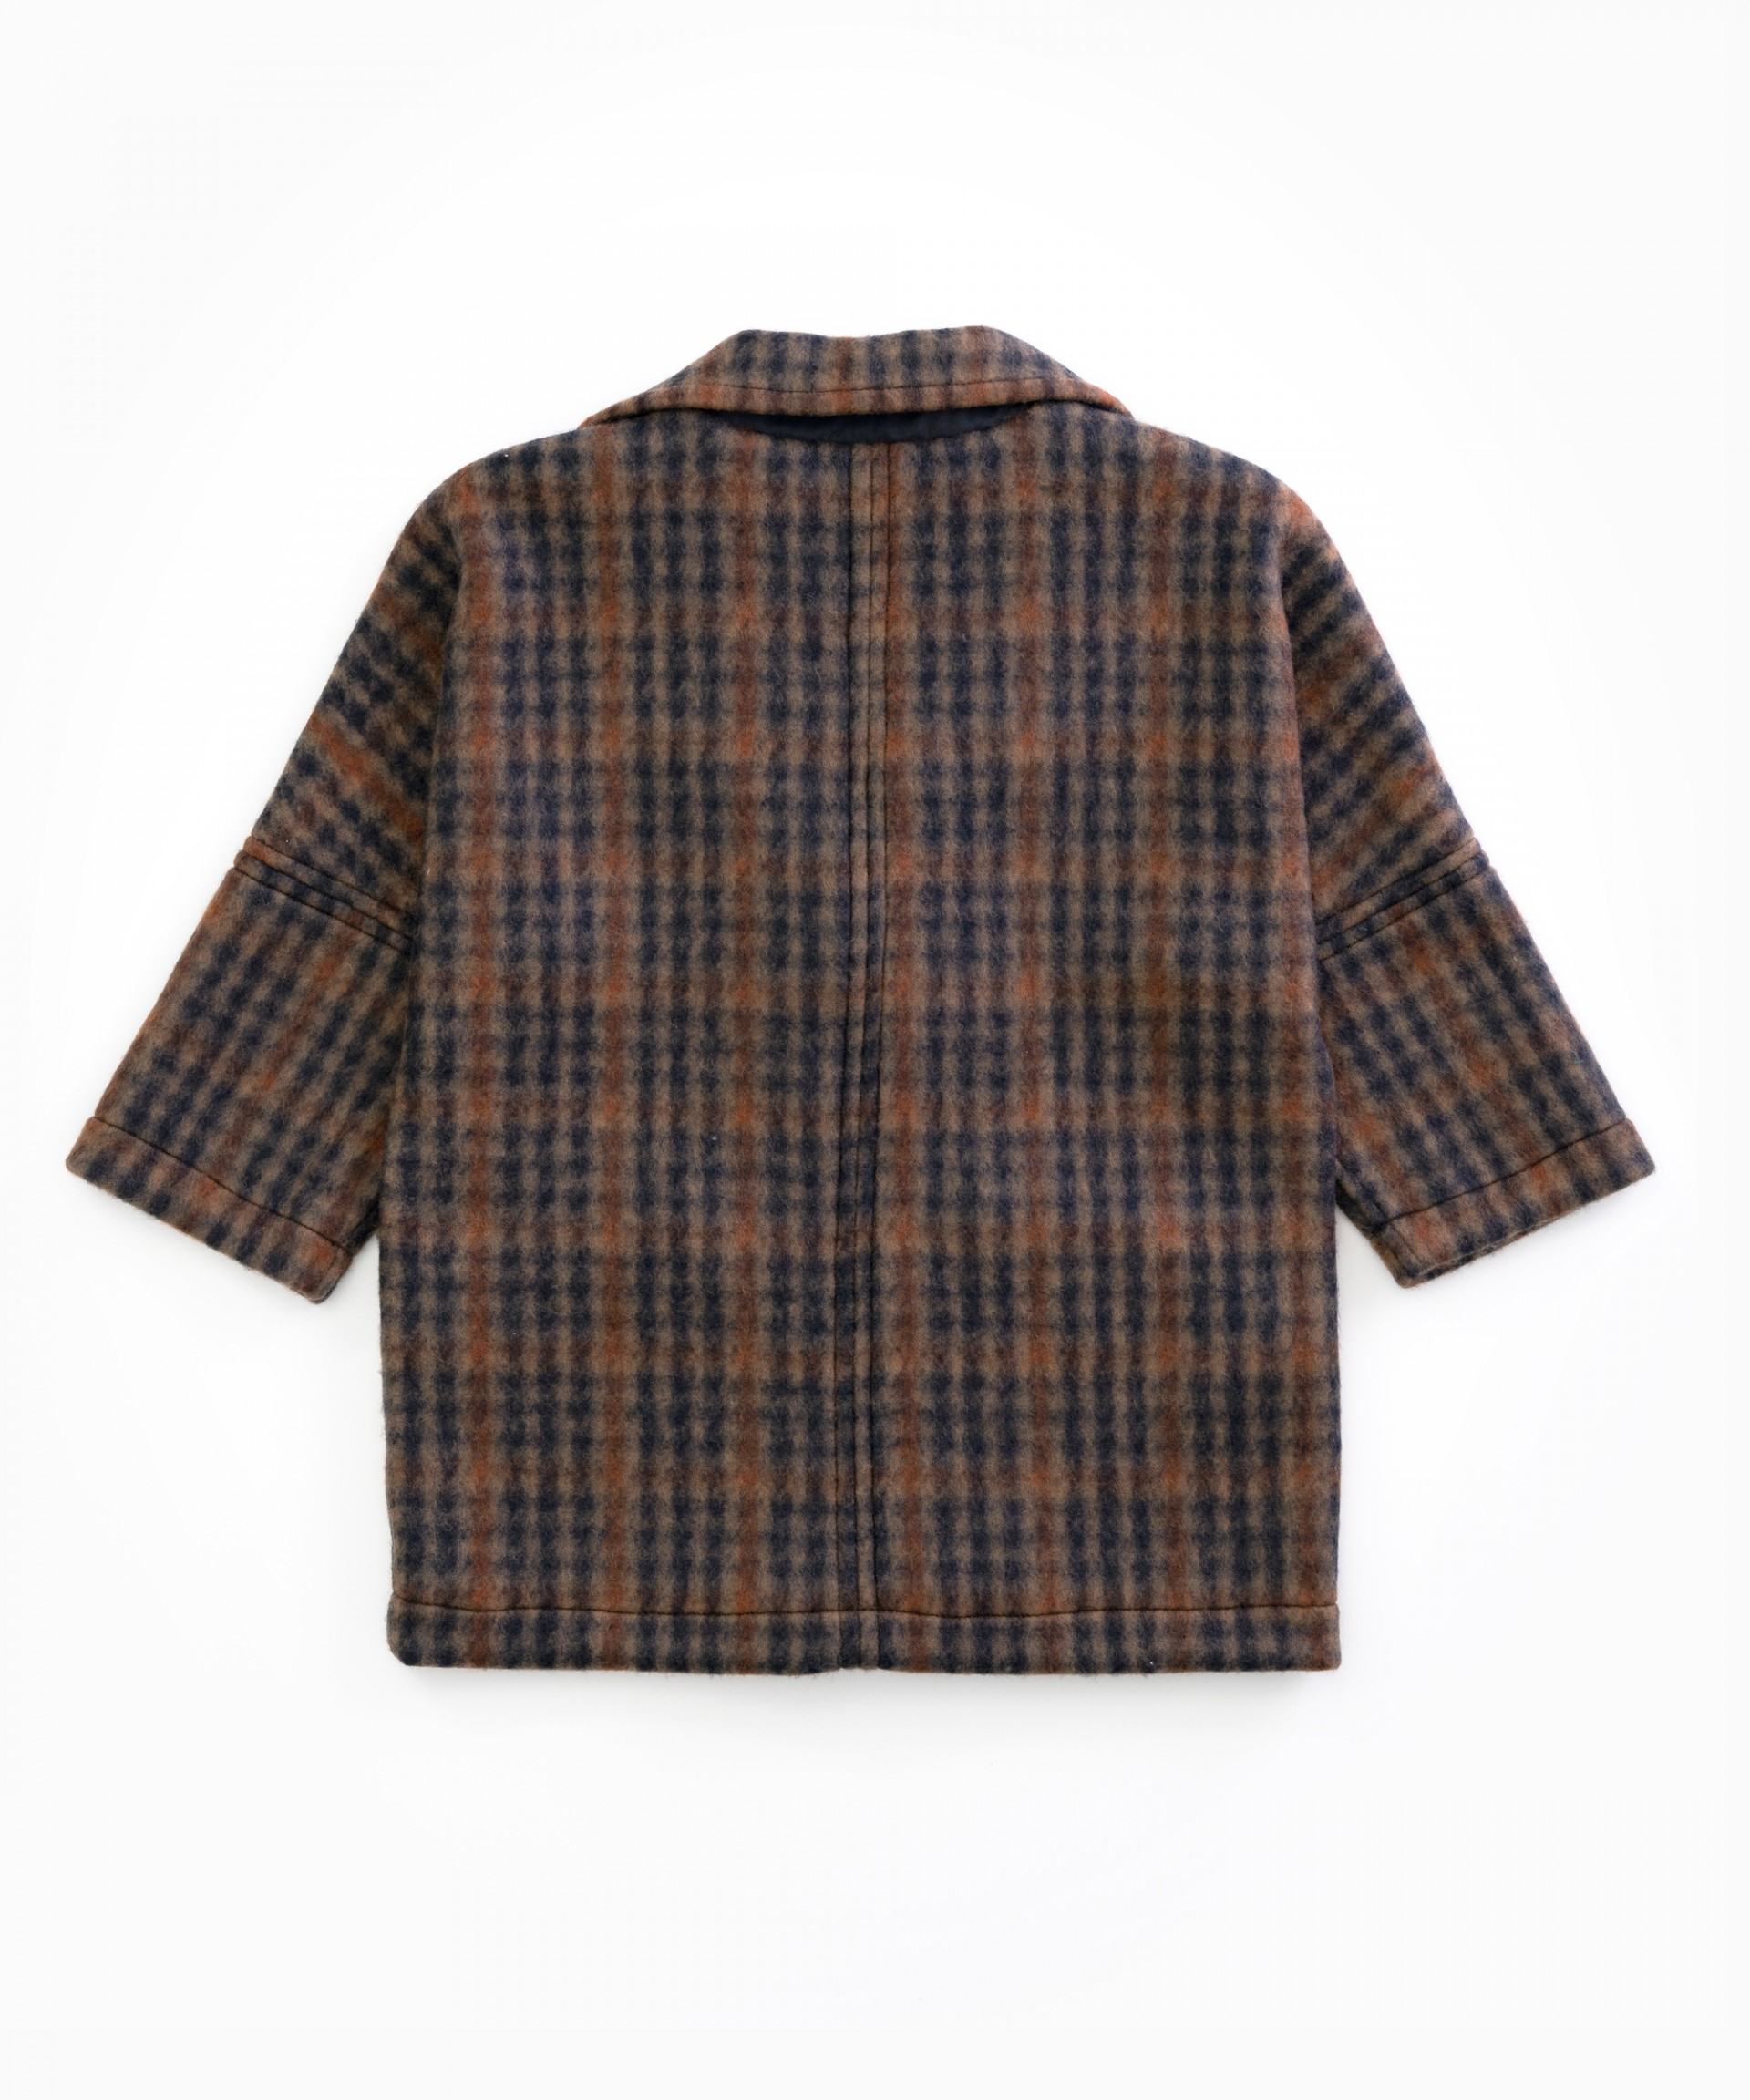 Chequered jacket with recycled fibres | Woodwork